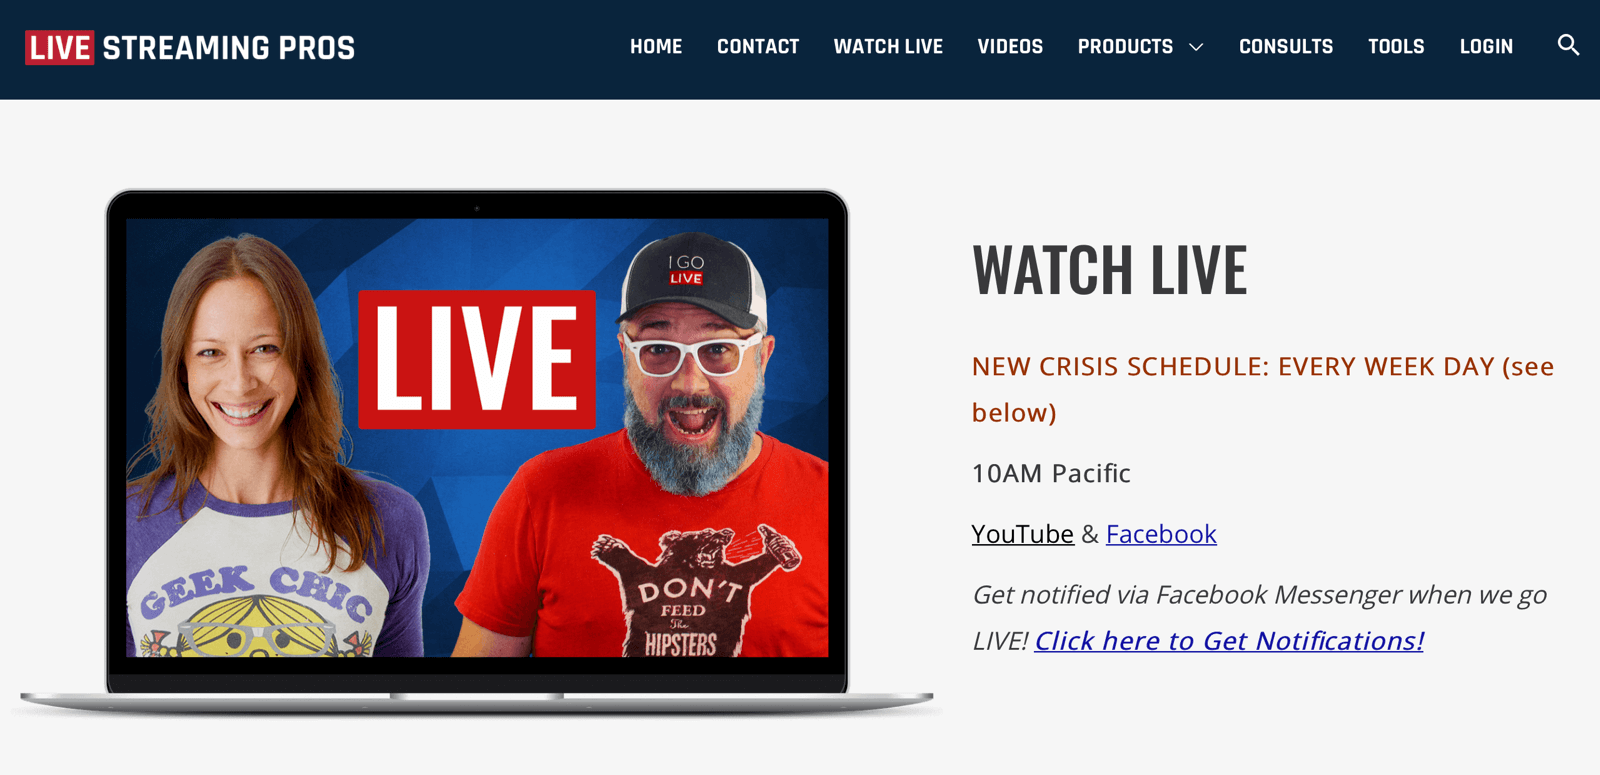 broadcast schedule on Live Streaming Pros website